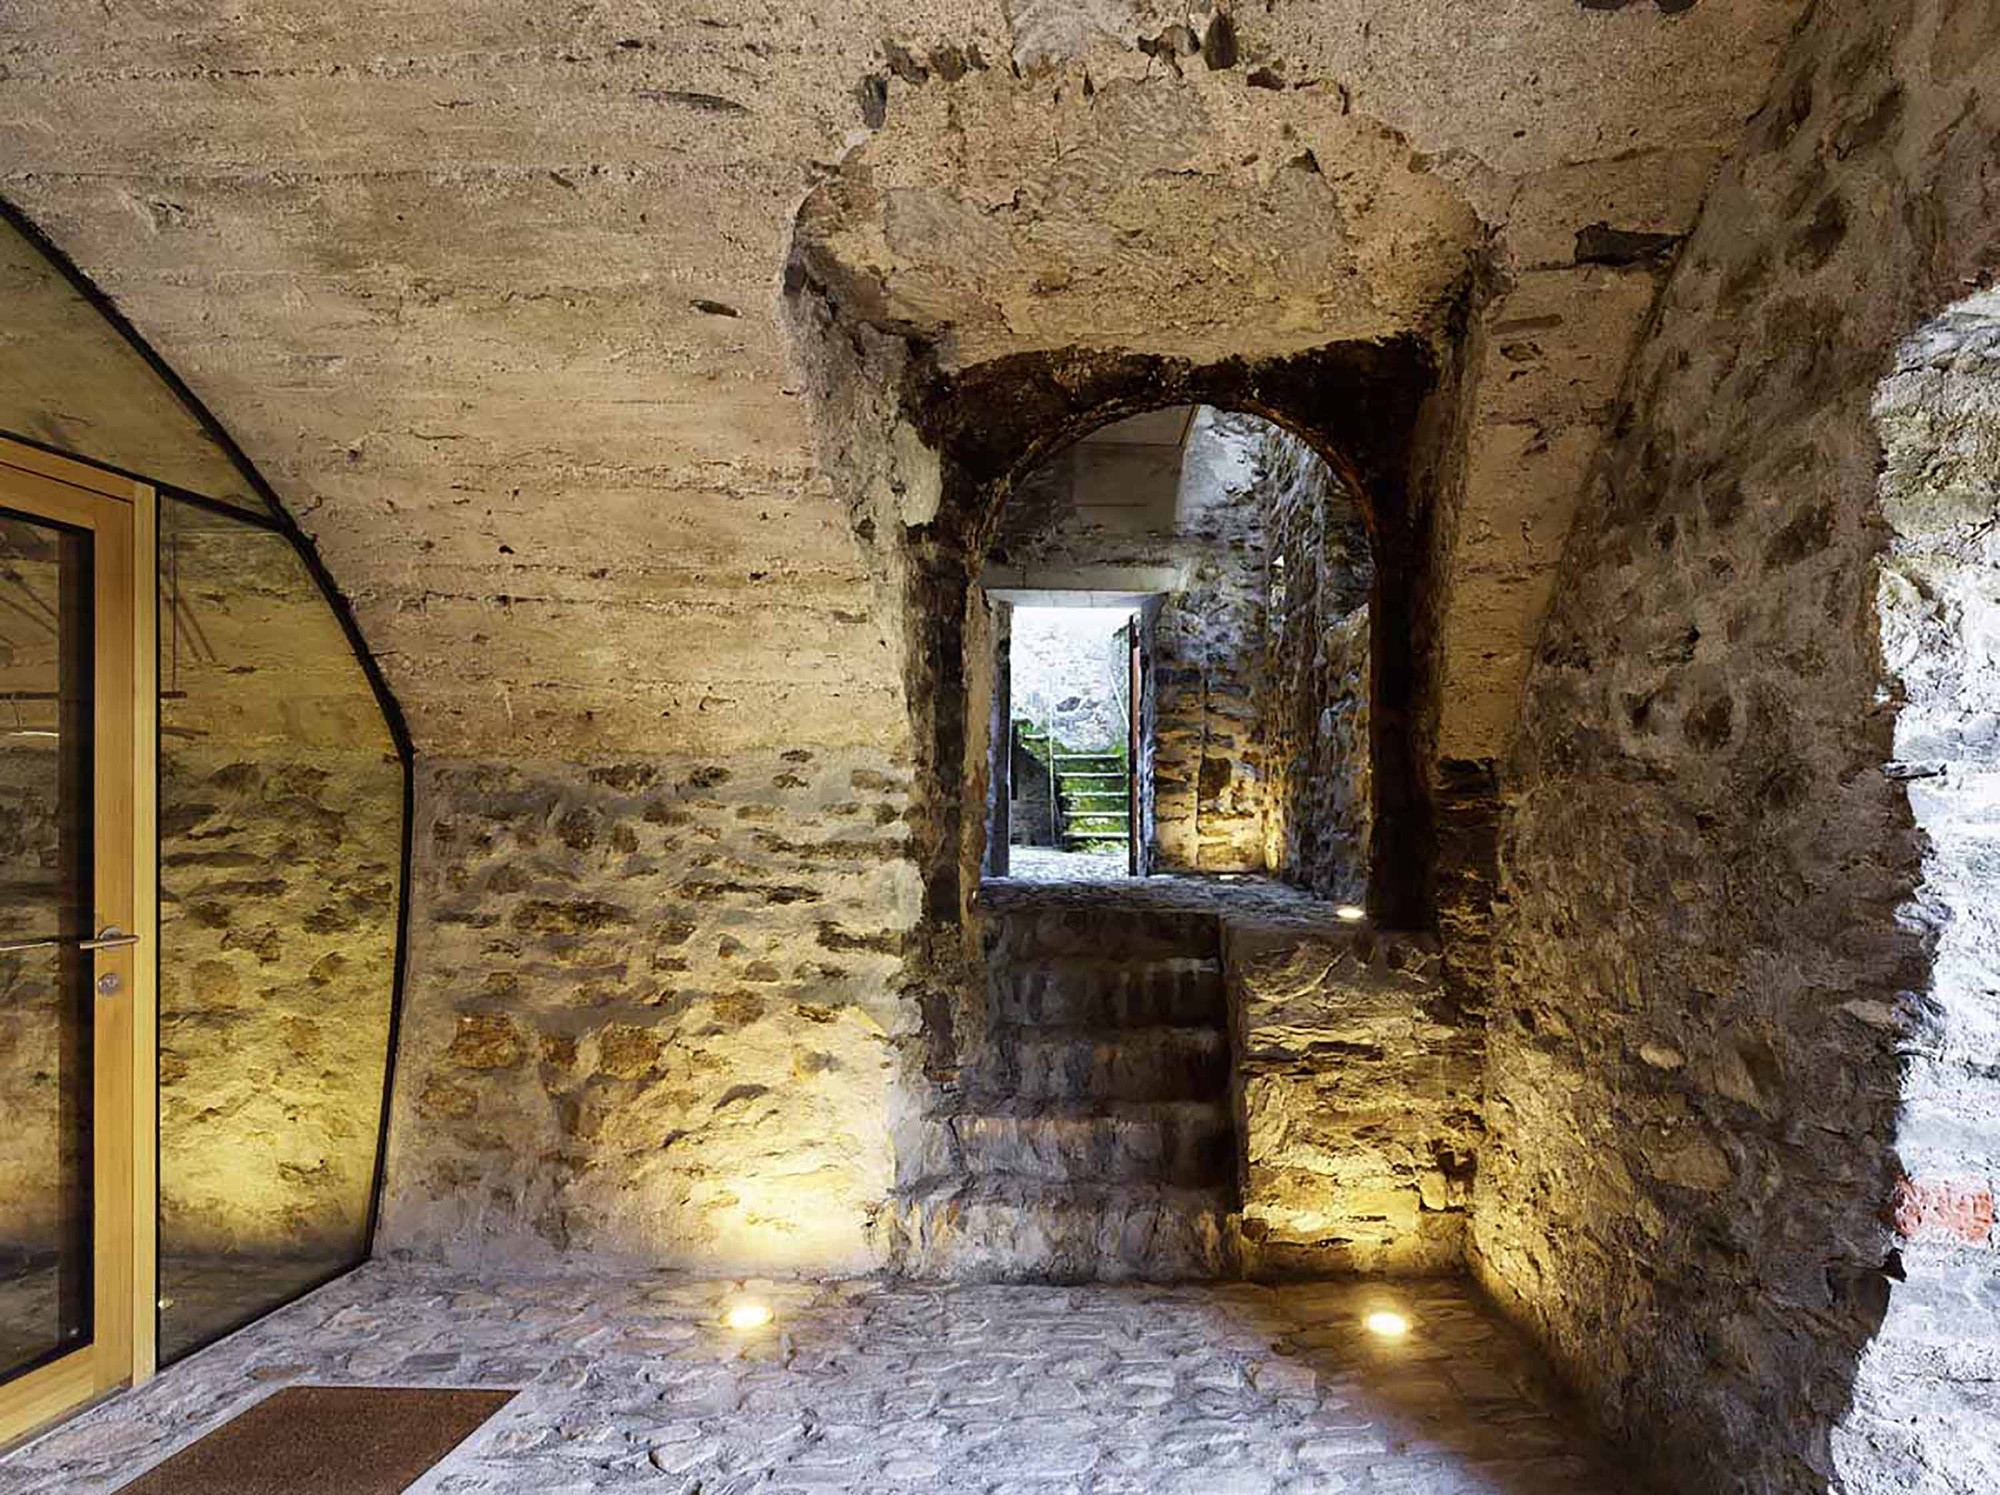 Gallery of stone house transformation in scaiano wespi de meuron romeo architects 1 Strona house